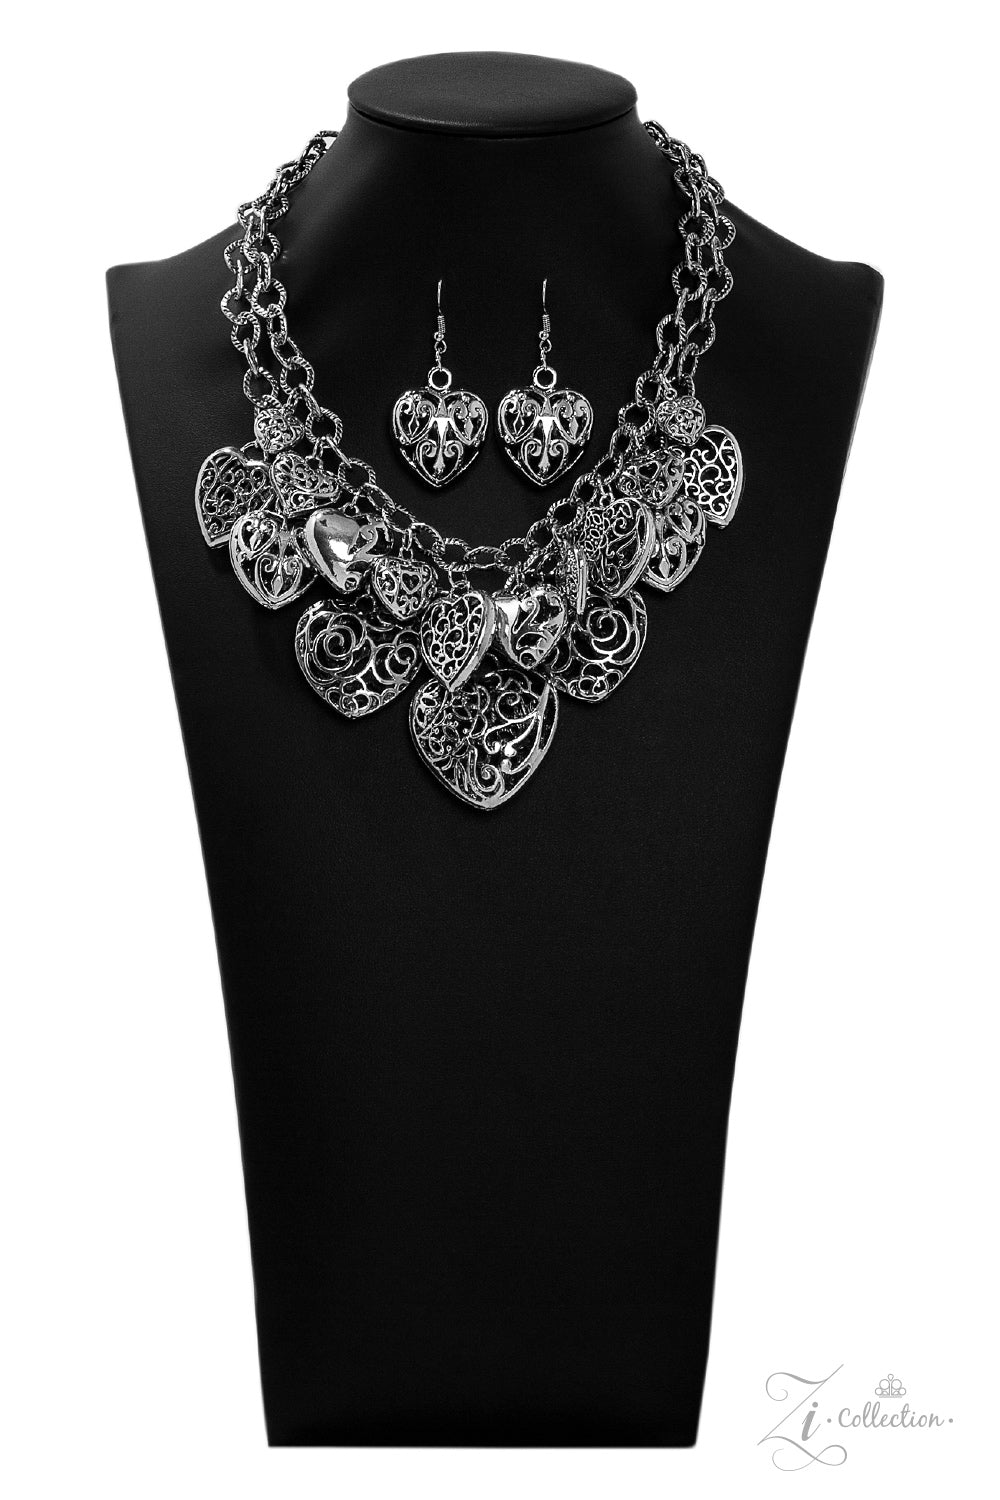 Paparazzi Accessories - Cherish - Silver Necklace Set - JMJ Jewelry Collection